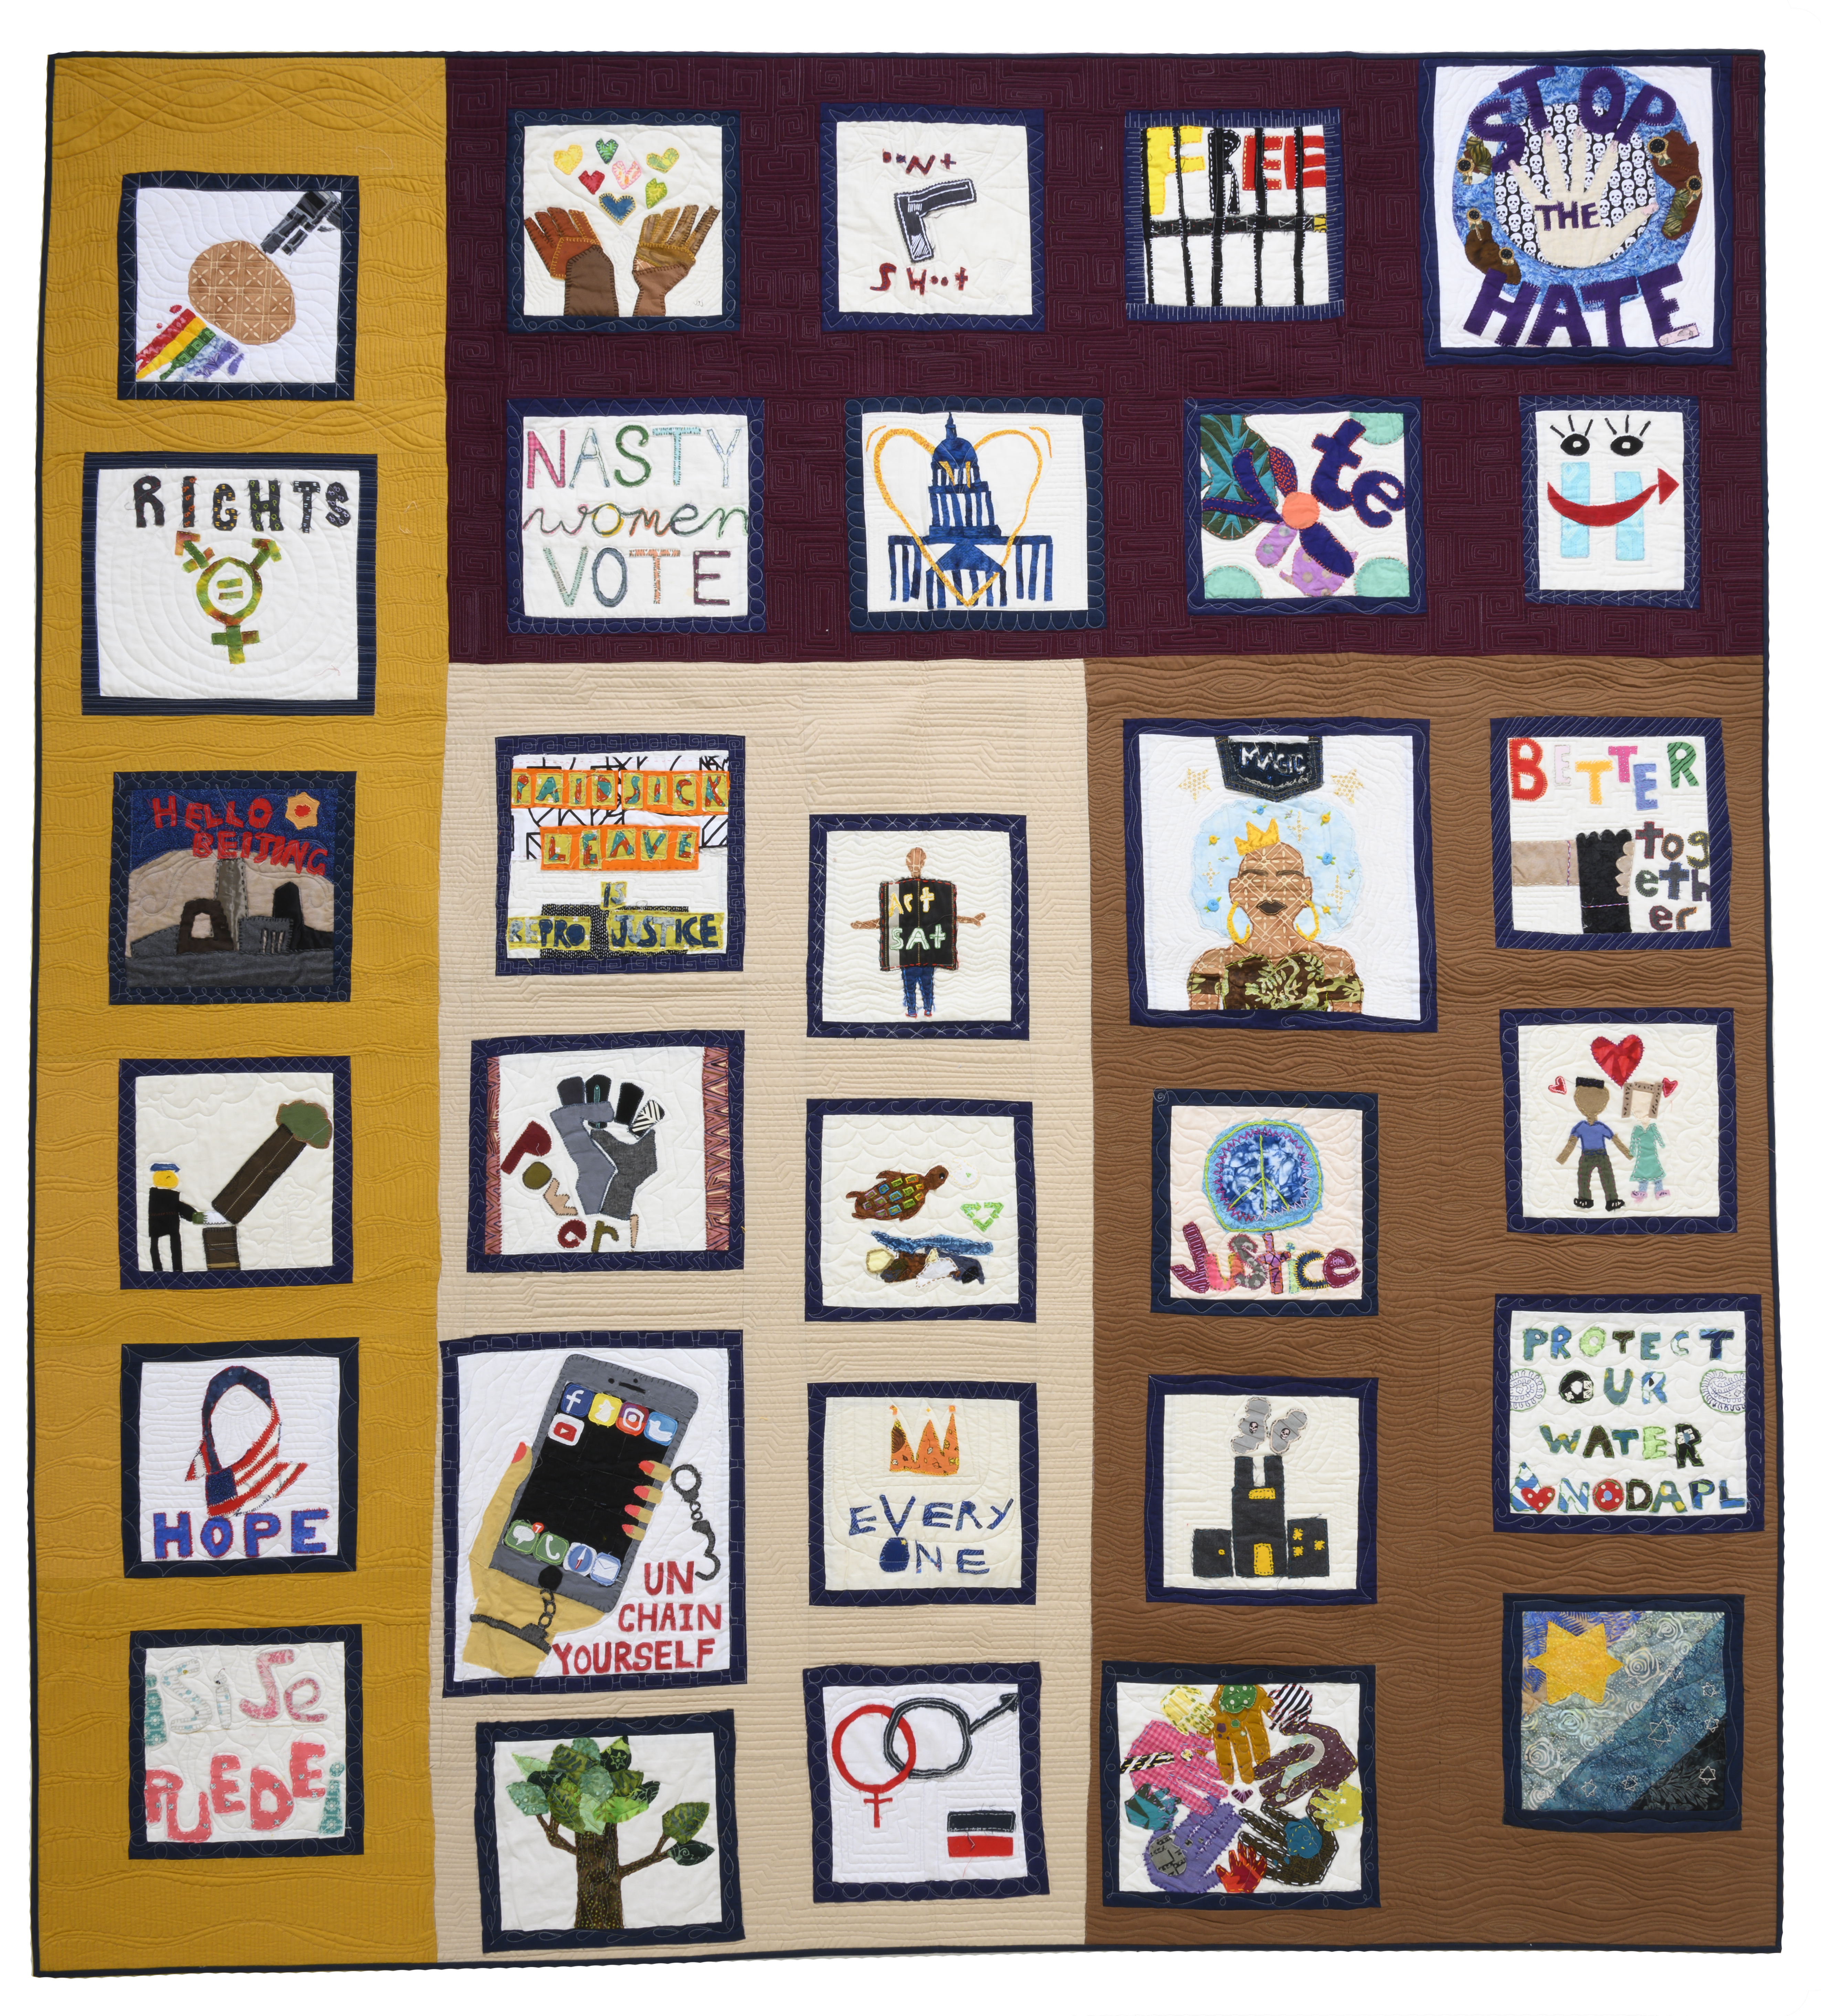 Photograph of a quilt with multicolored materials and blocks depicting social justice issues